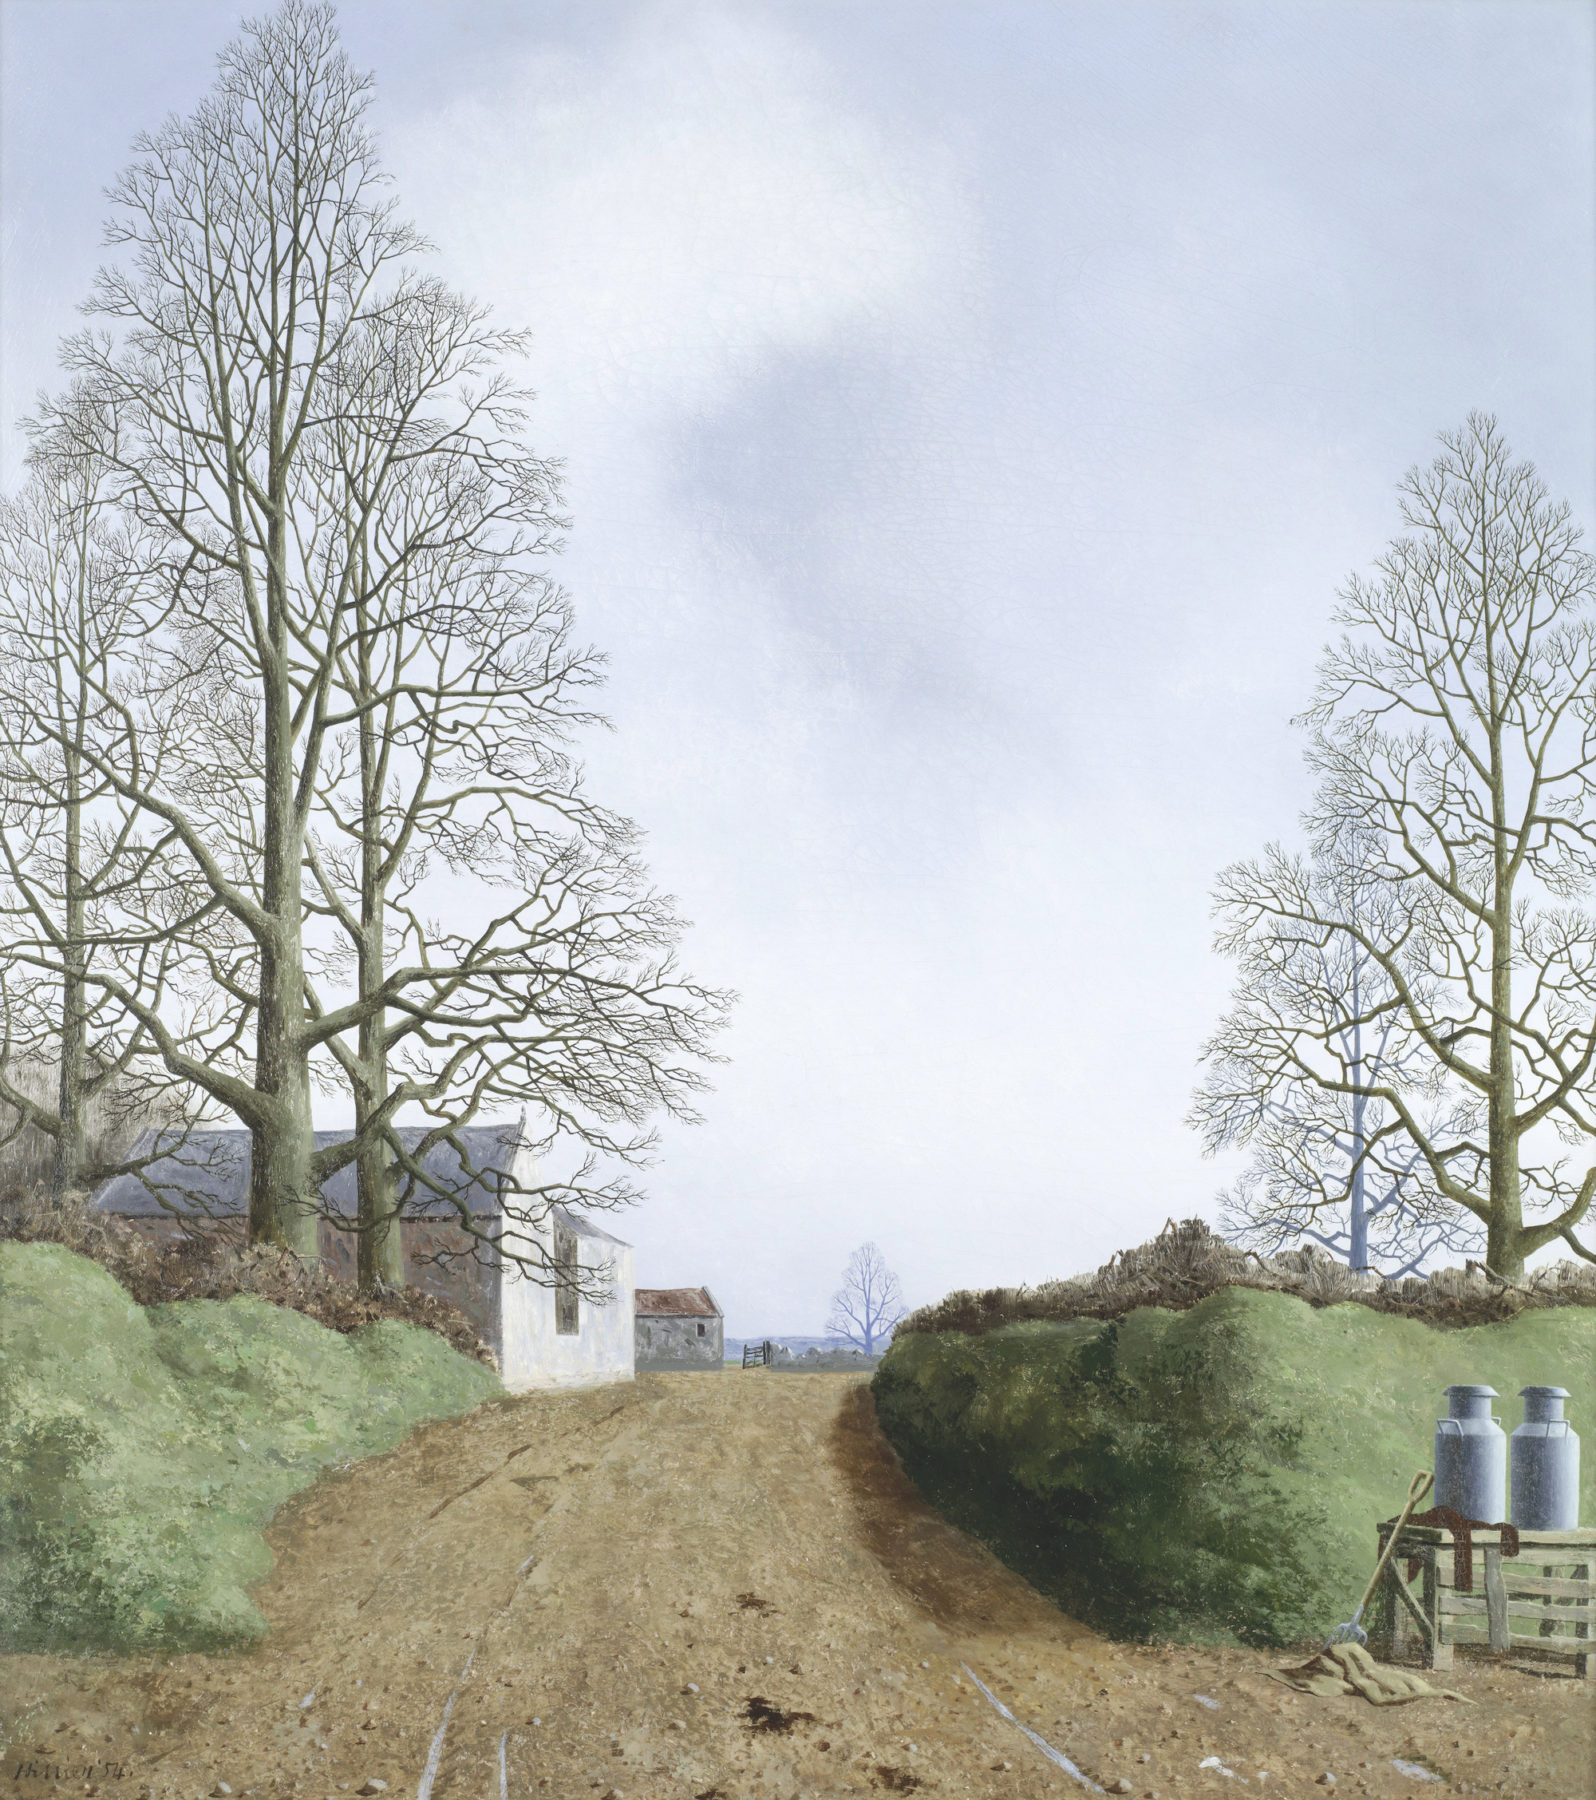 An uneven lane leads to agricultural buildings and open countryside beyond. The scene is framed by tall and thin bare-branched trees. The grey blue sky indicates a cold winter's day. Milk churns and abandoned farming tools are shown in the foreground, to the right of the road.